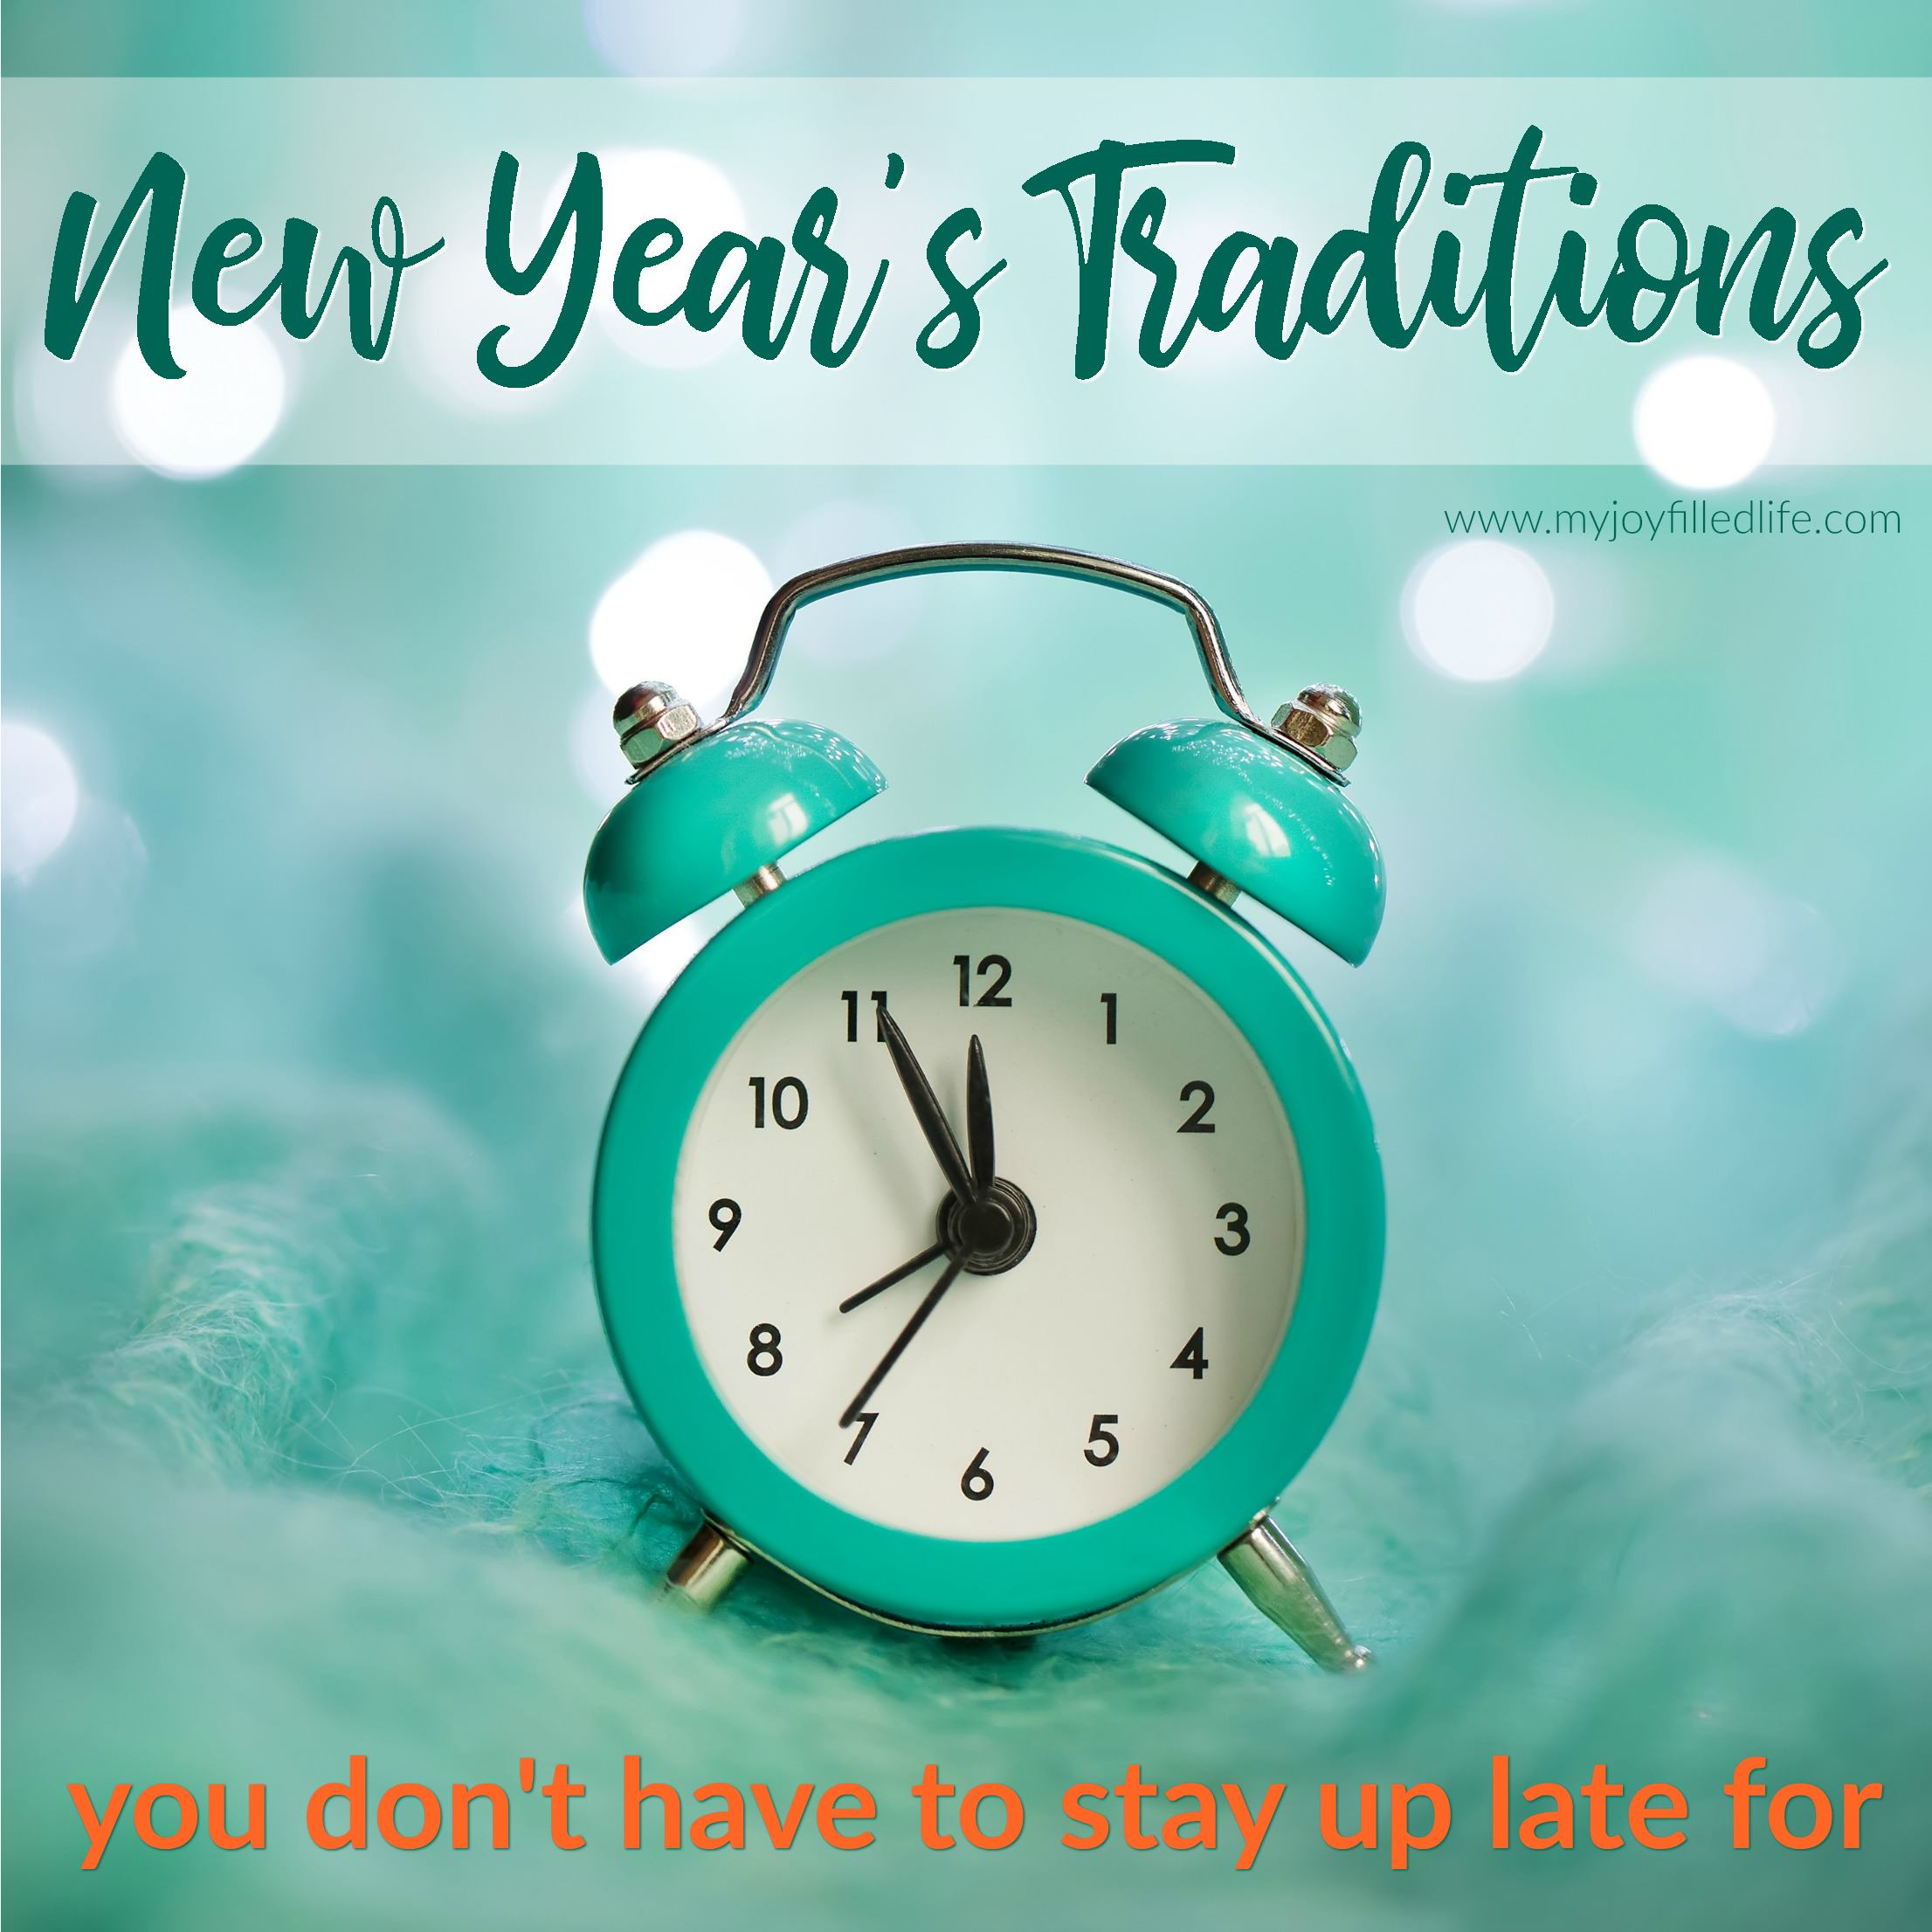 New Year's Traditions You Don't Have to Stay Up Late For